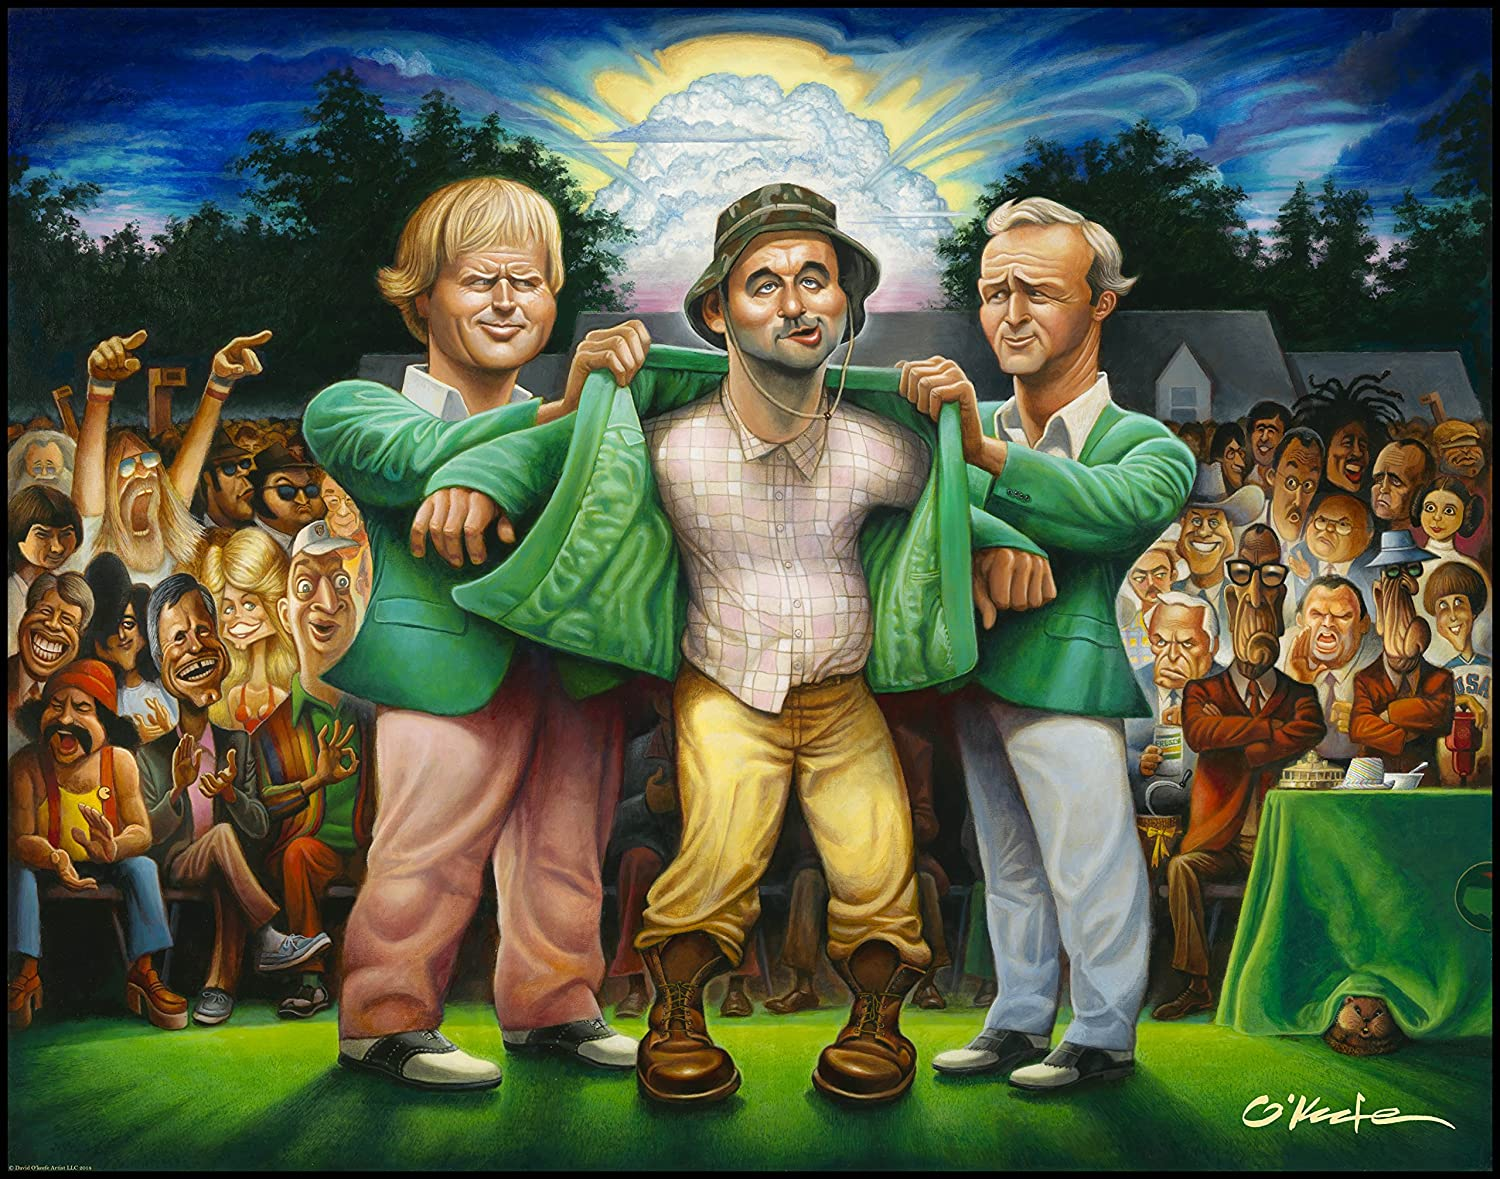 The Green Jacket. A Tribute to Carl Spackler and 1980 Giclée Print